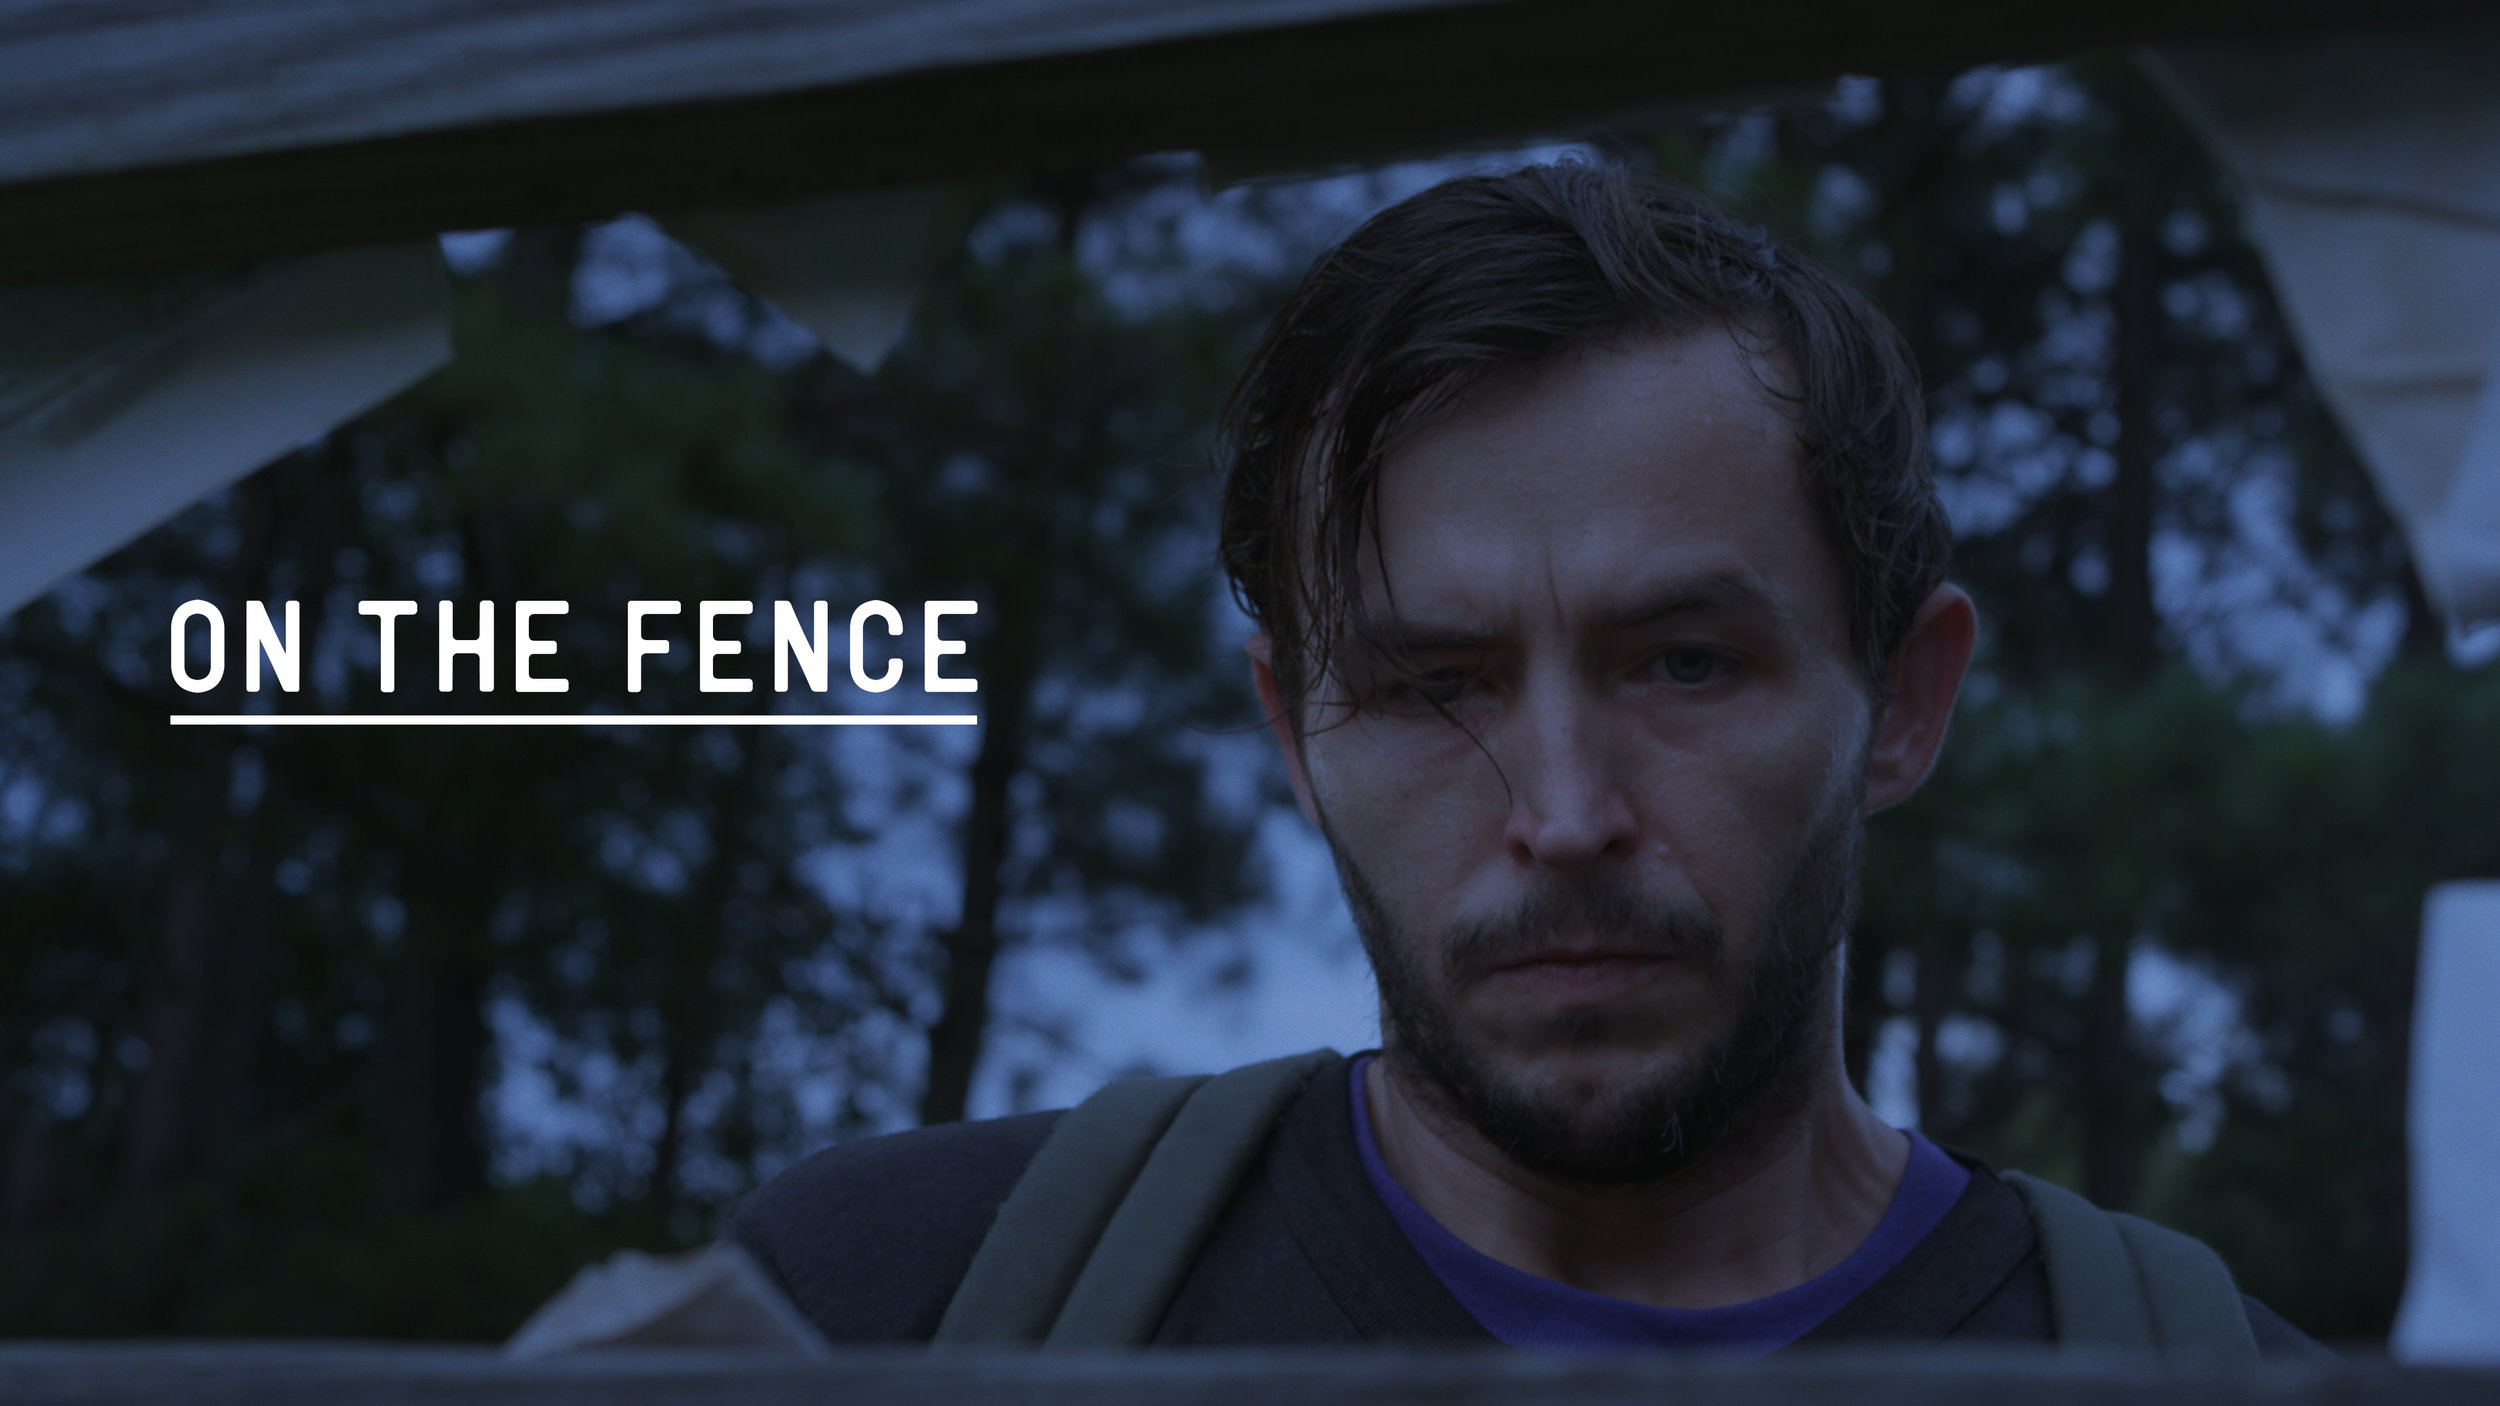 ON THE FENCE - A narrative short film about Pete, a drug addict on the run, who tries to reconnect with his family after escaping his court-mandated recovery center.Premiering on the 2018/19 film festival circuit.